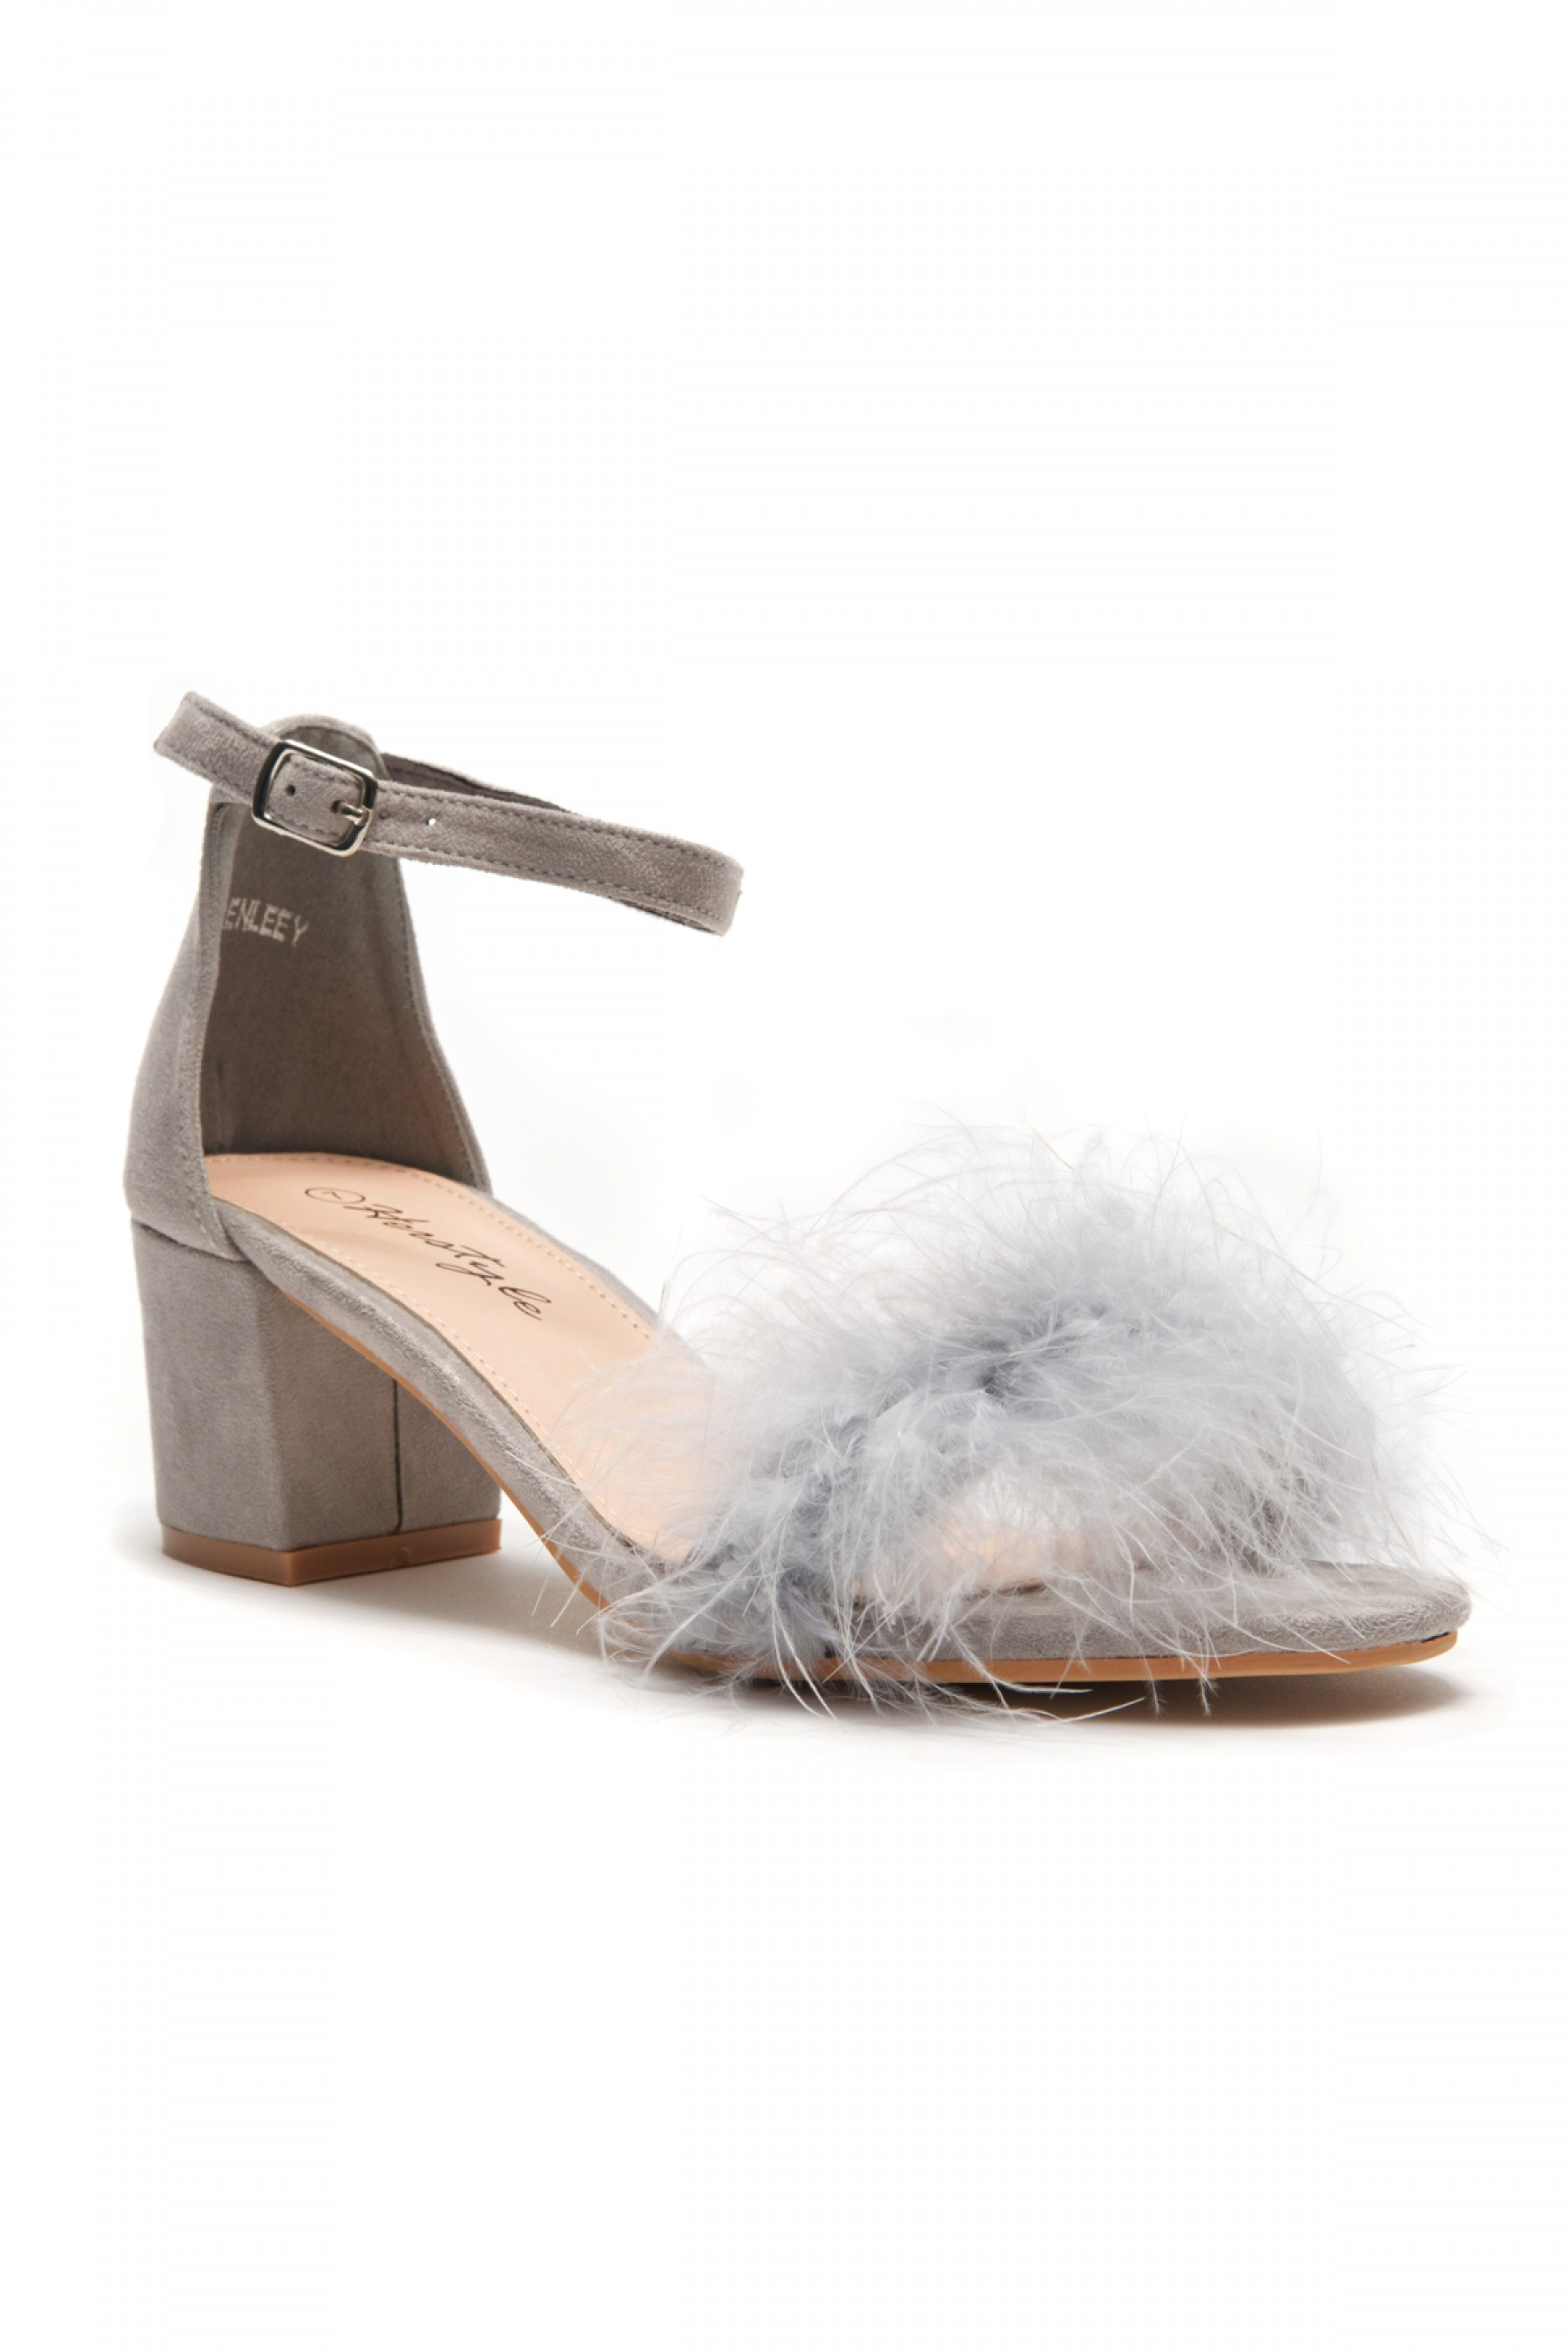 e603d79d0 HerStyle Women s Manmade Brenleey Suede Faux Feather Accent ...